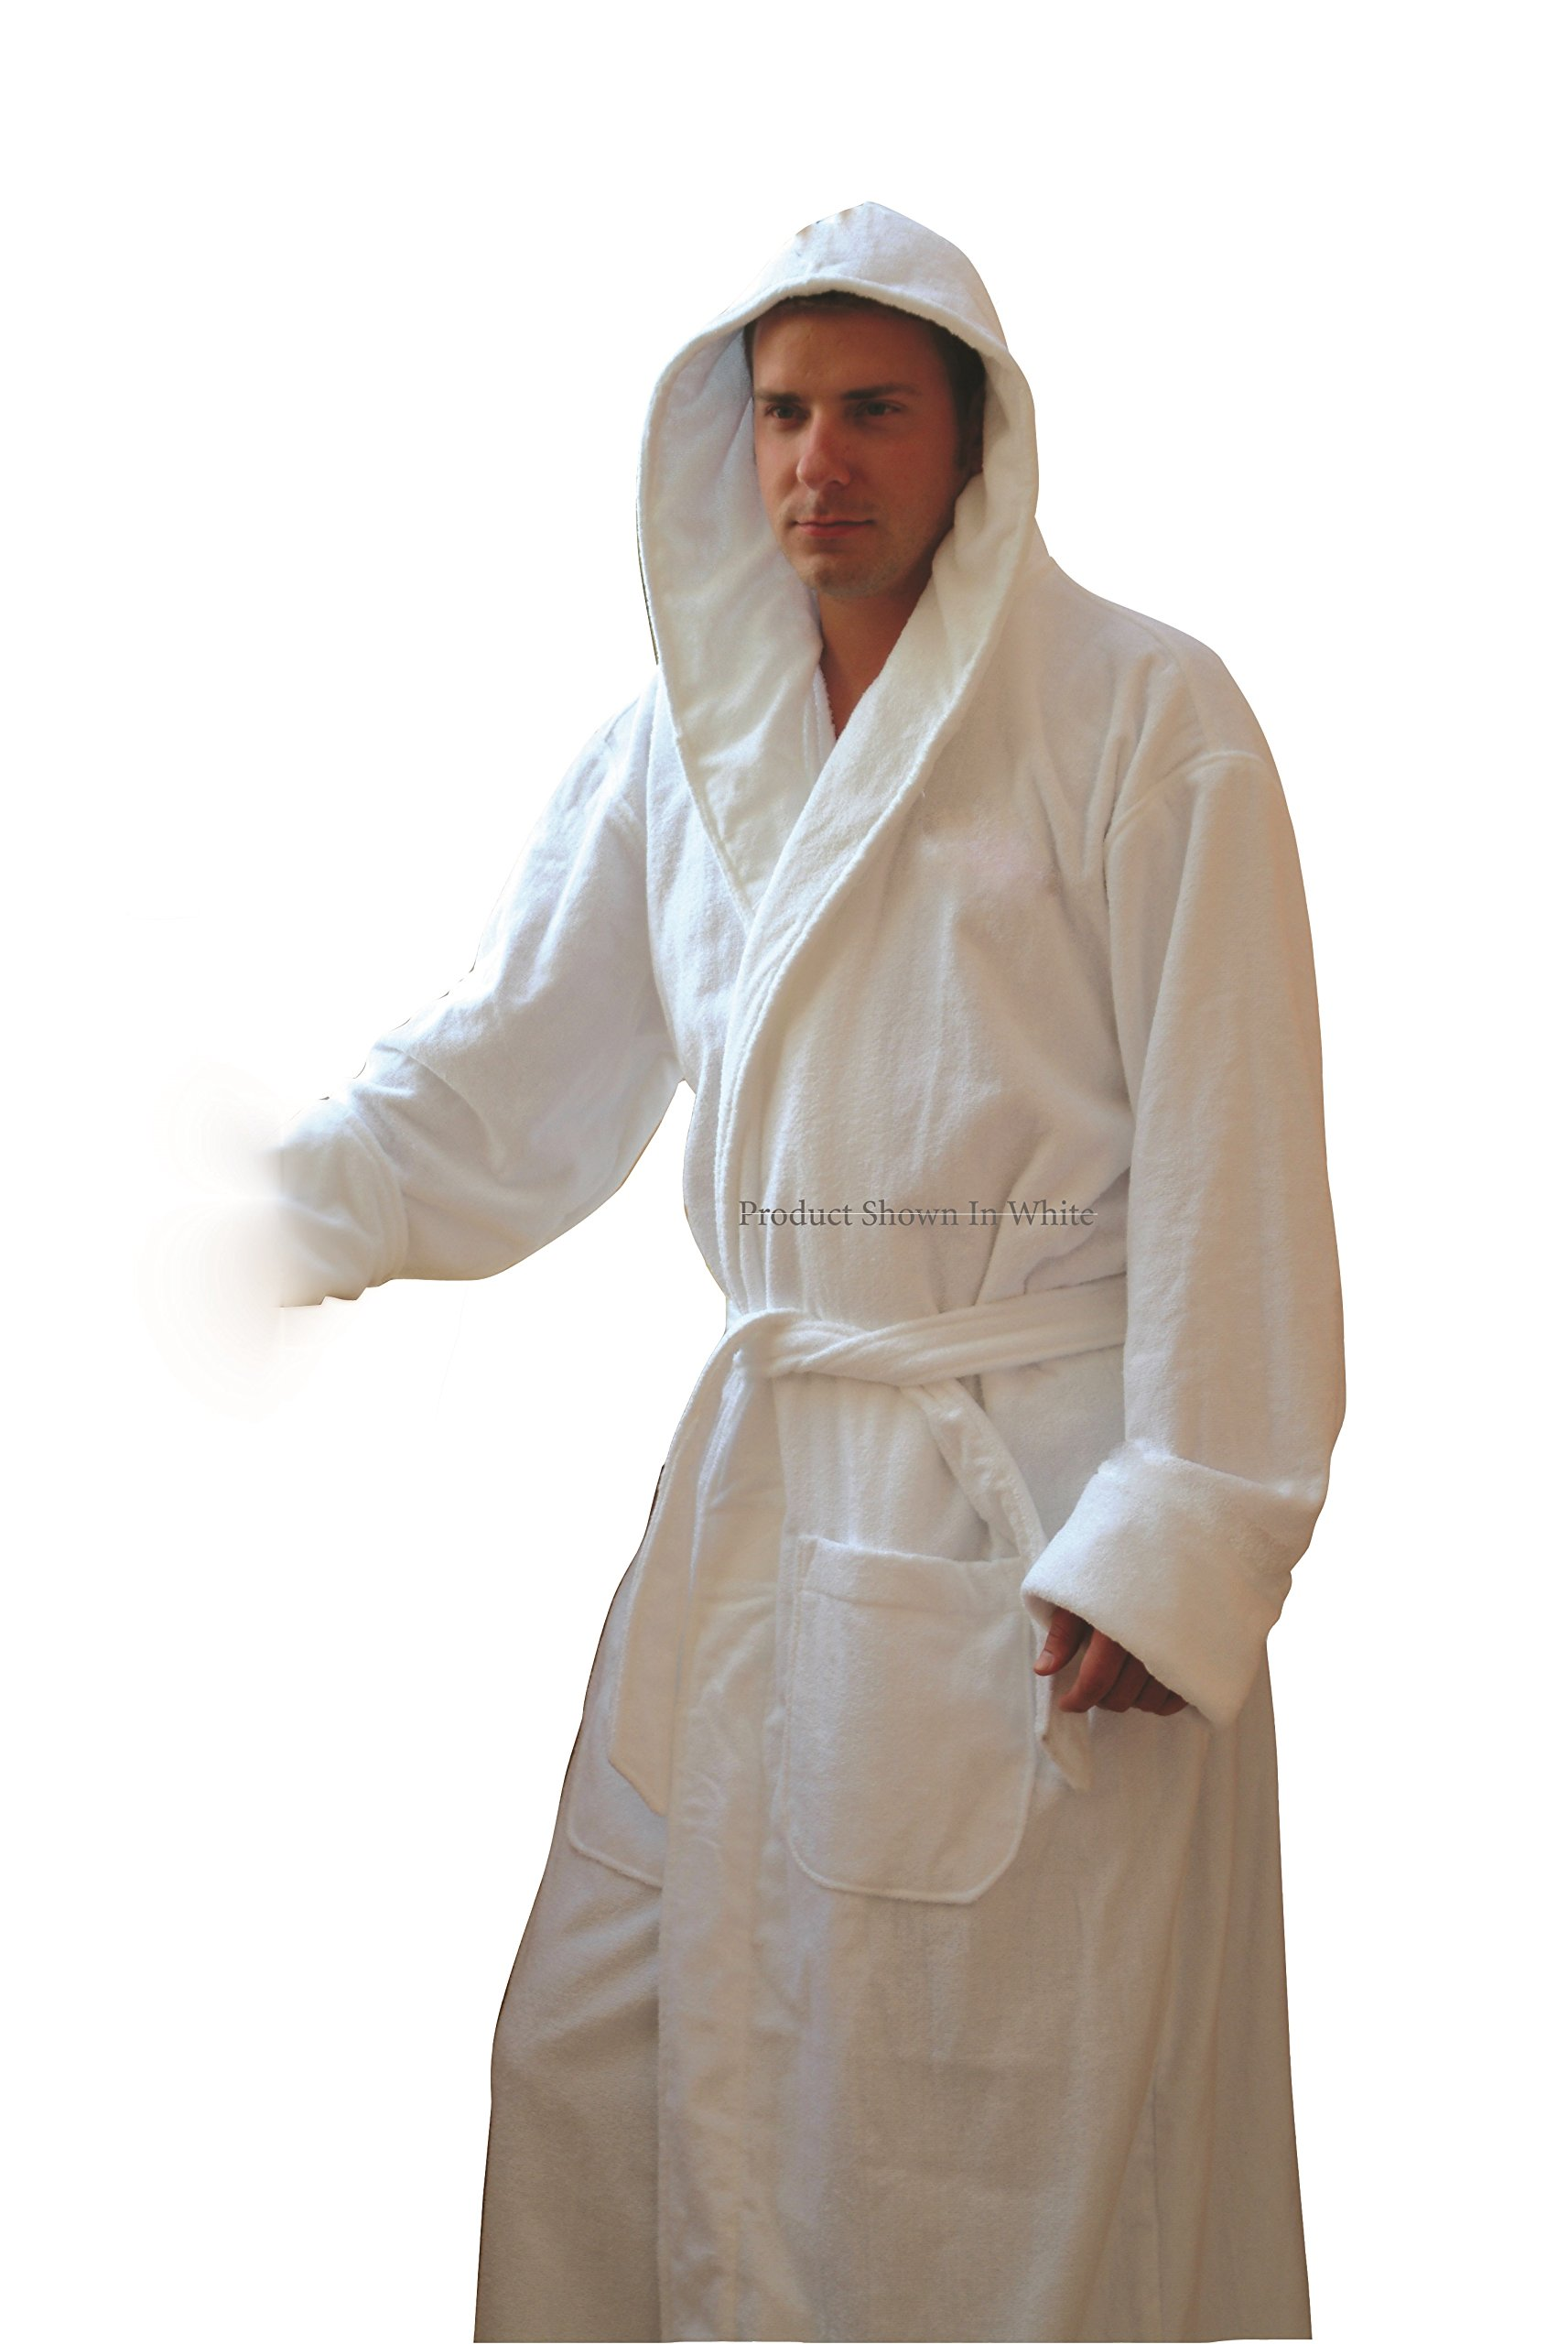 Hooded Terry Bathrobe. 9 Colors Available. Robe Weight 3.5lb (Royal Blue) by Spa & Resort